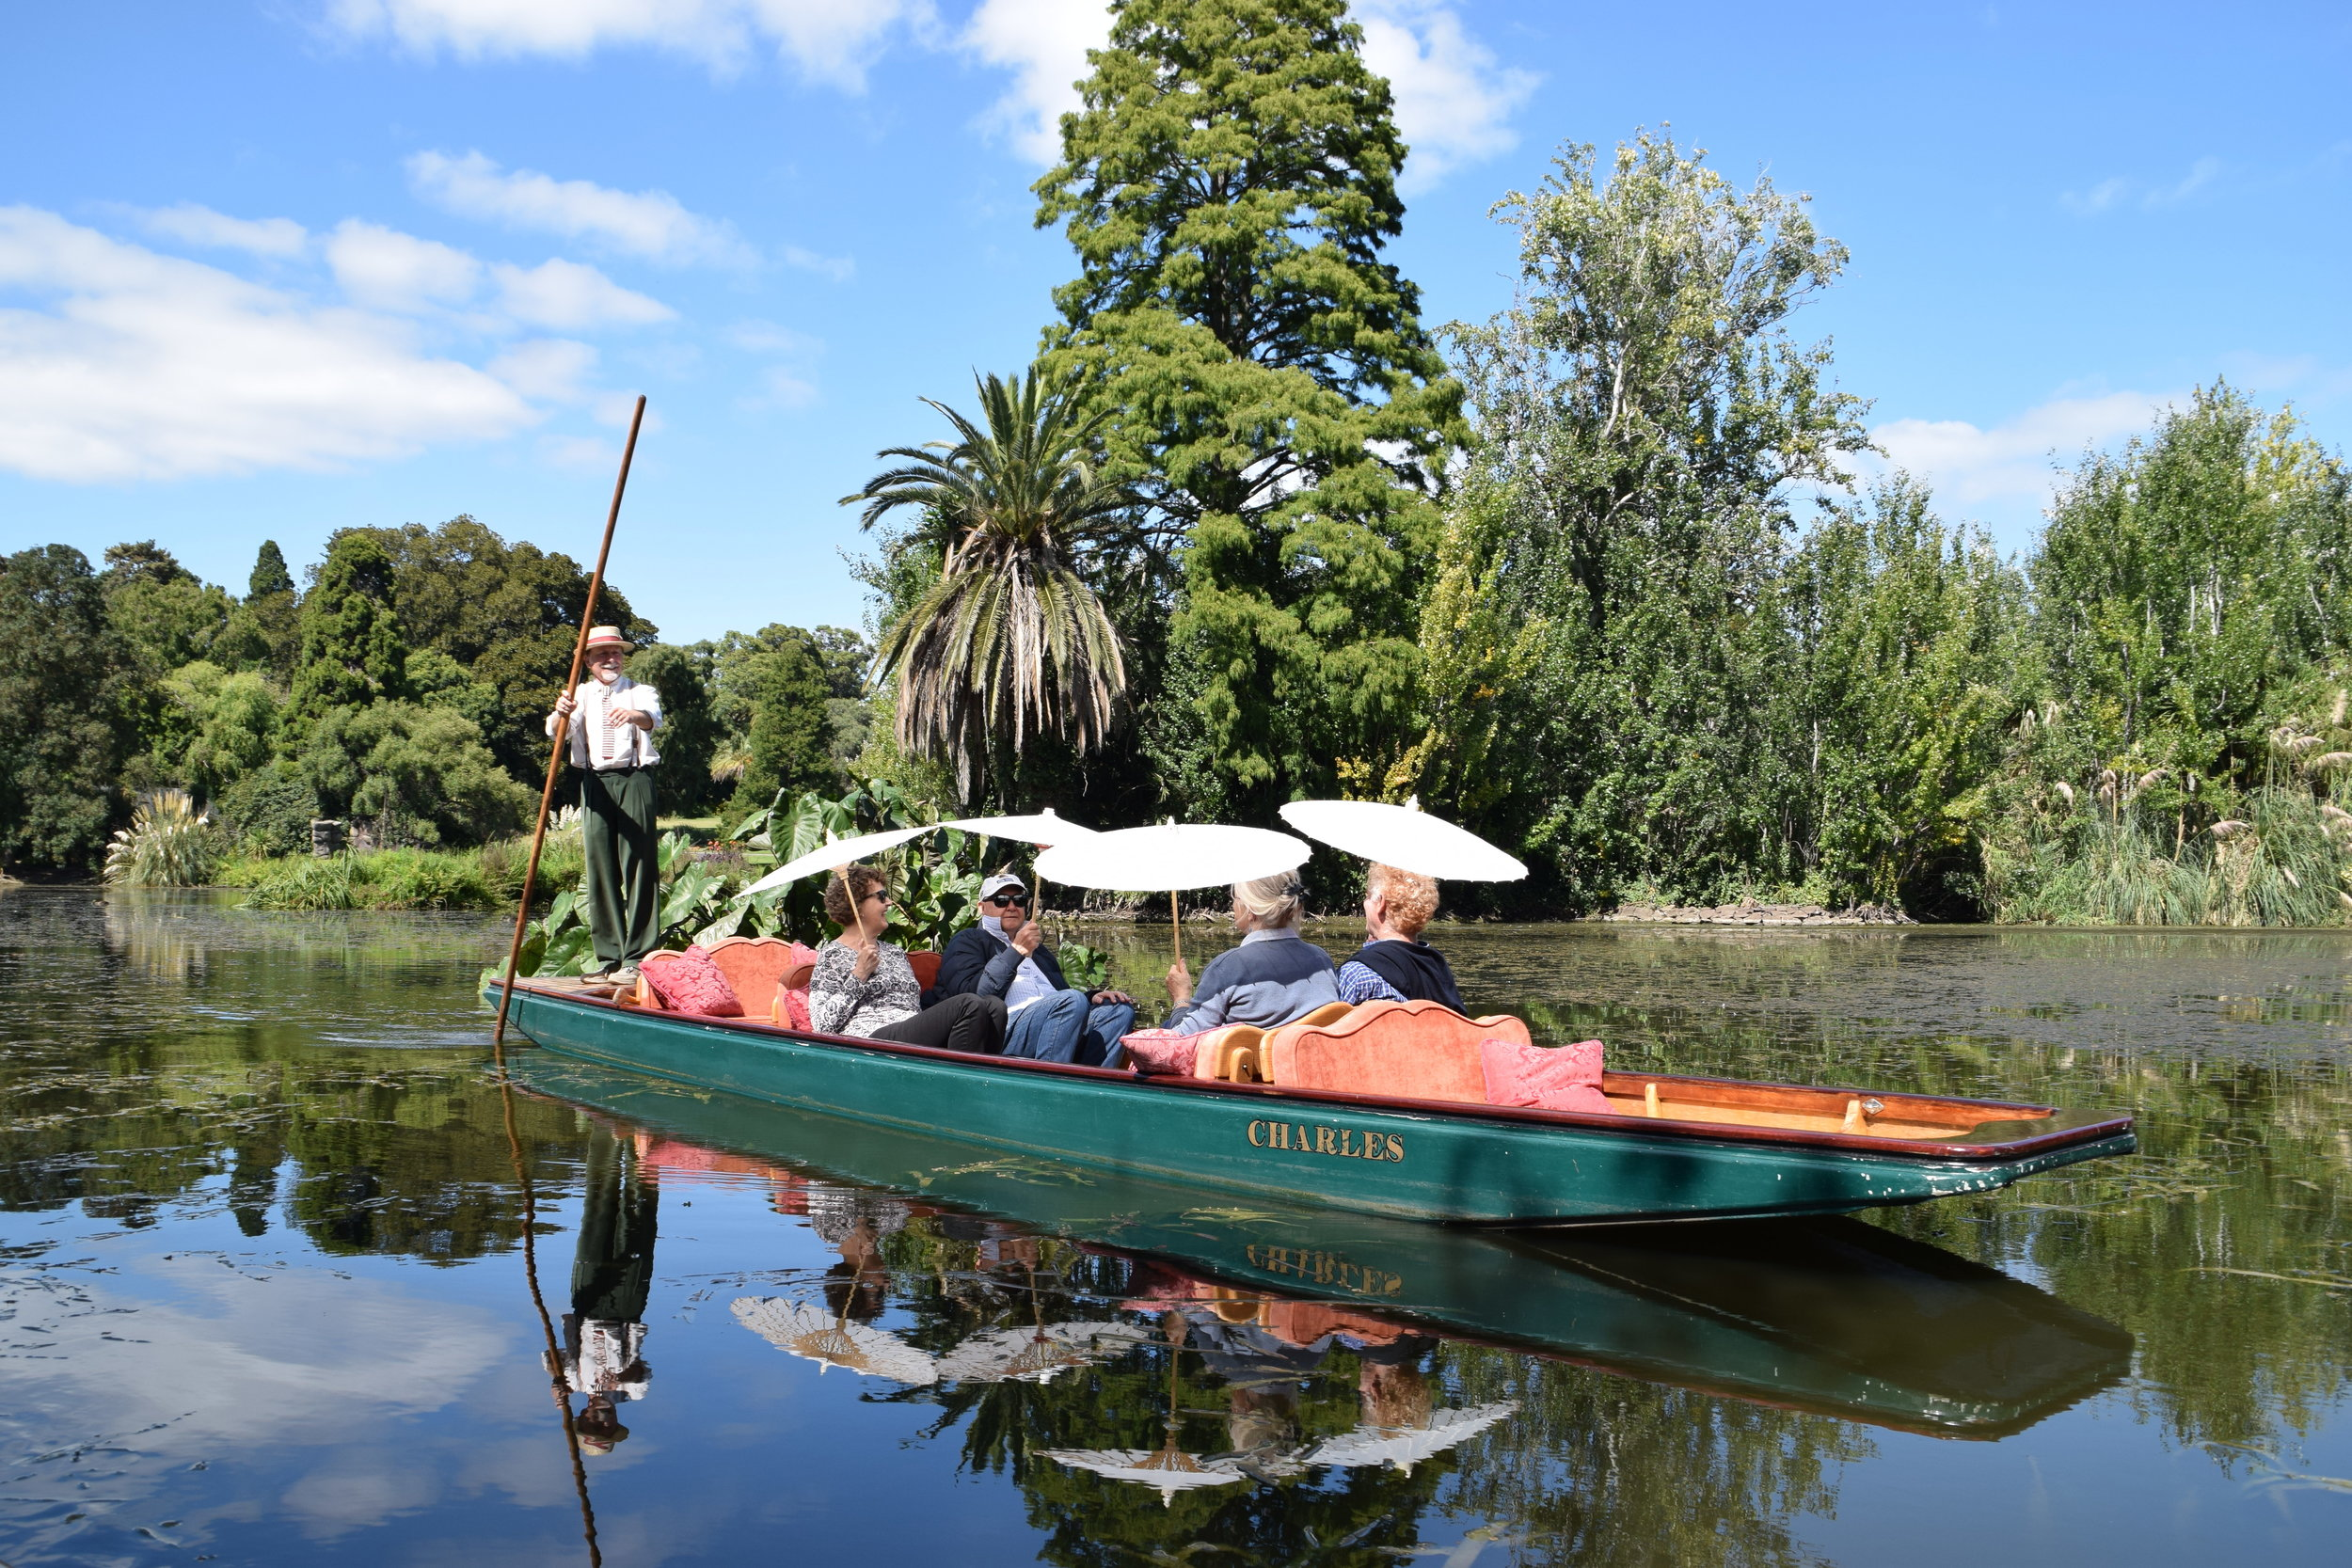 Melbourne Bus Tour-History Tour-Gardens and Days Gone By-Botanic Gardens-Guided Boat Tour